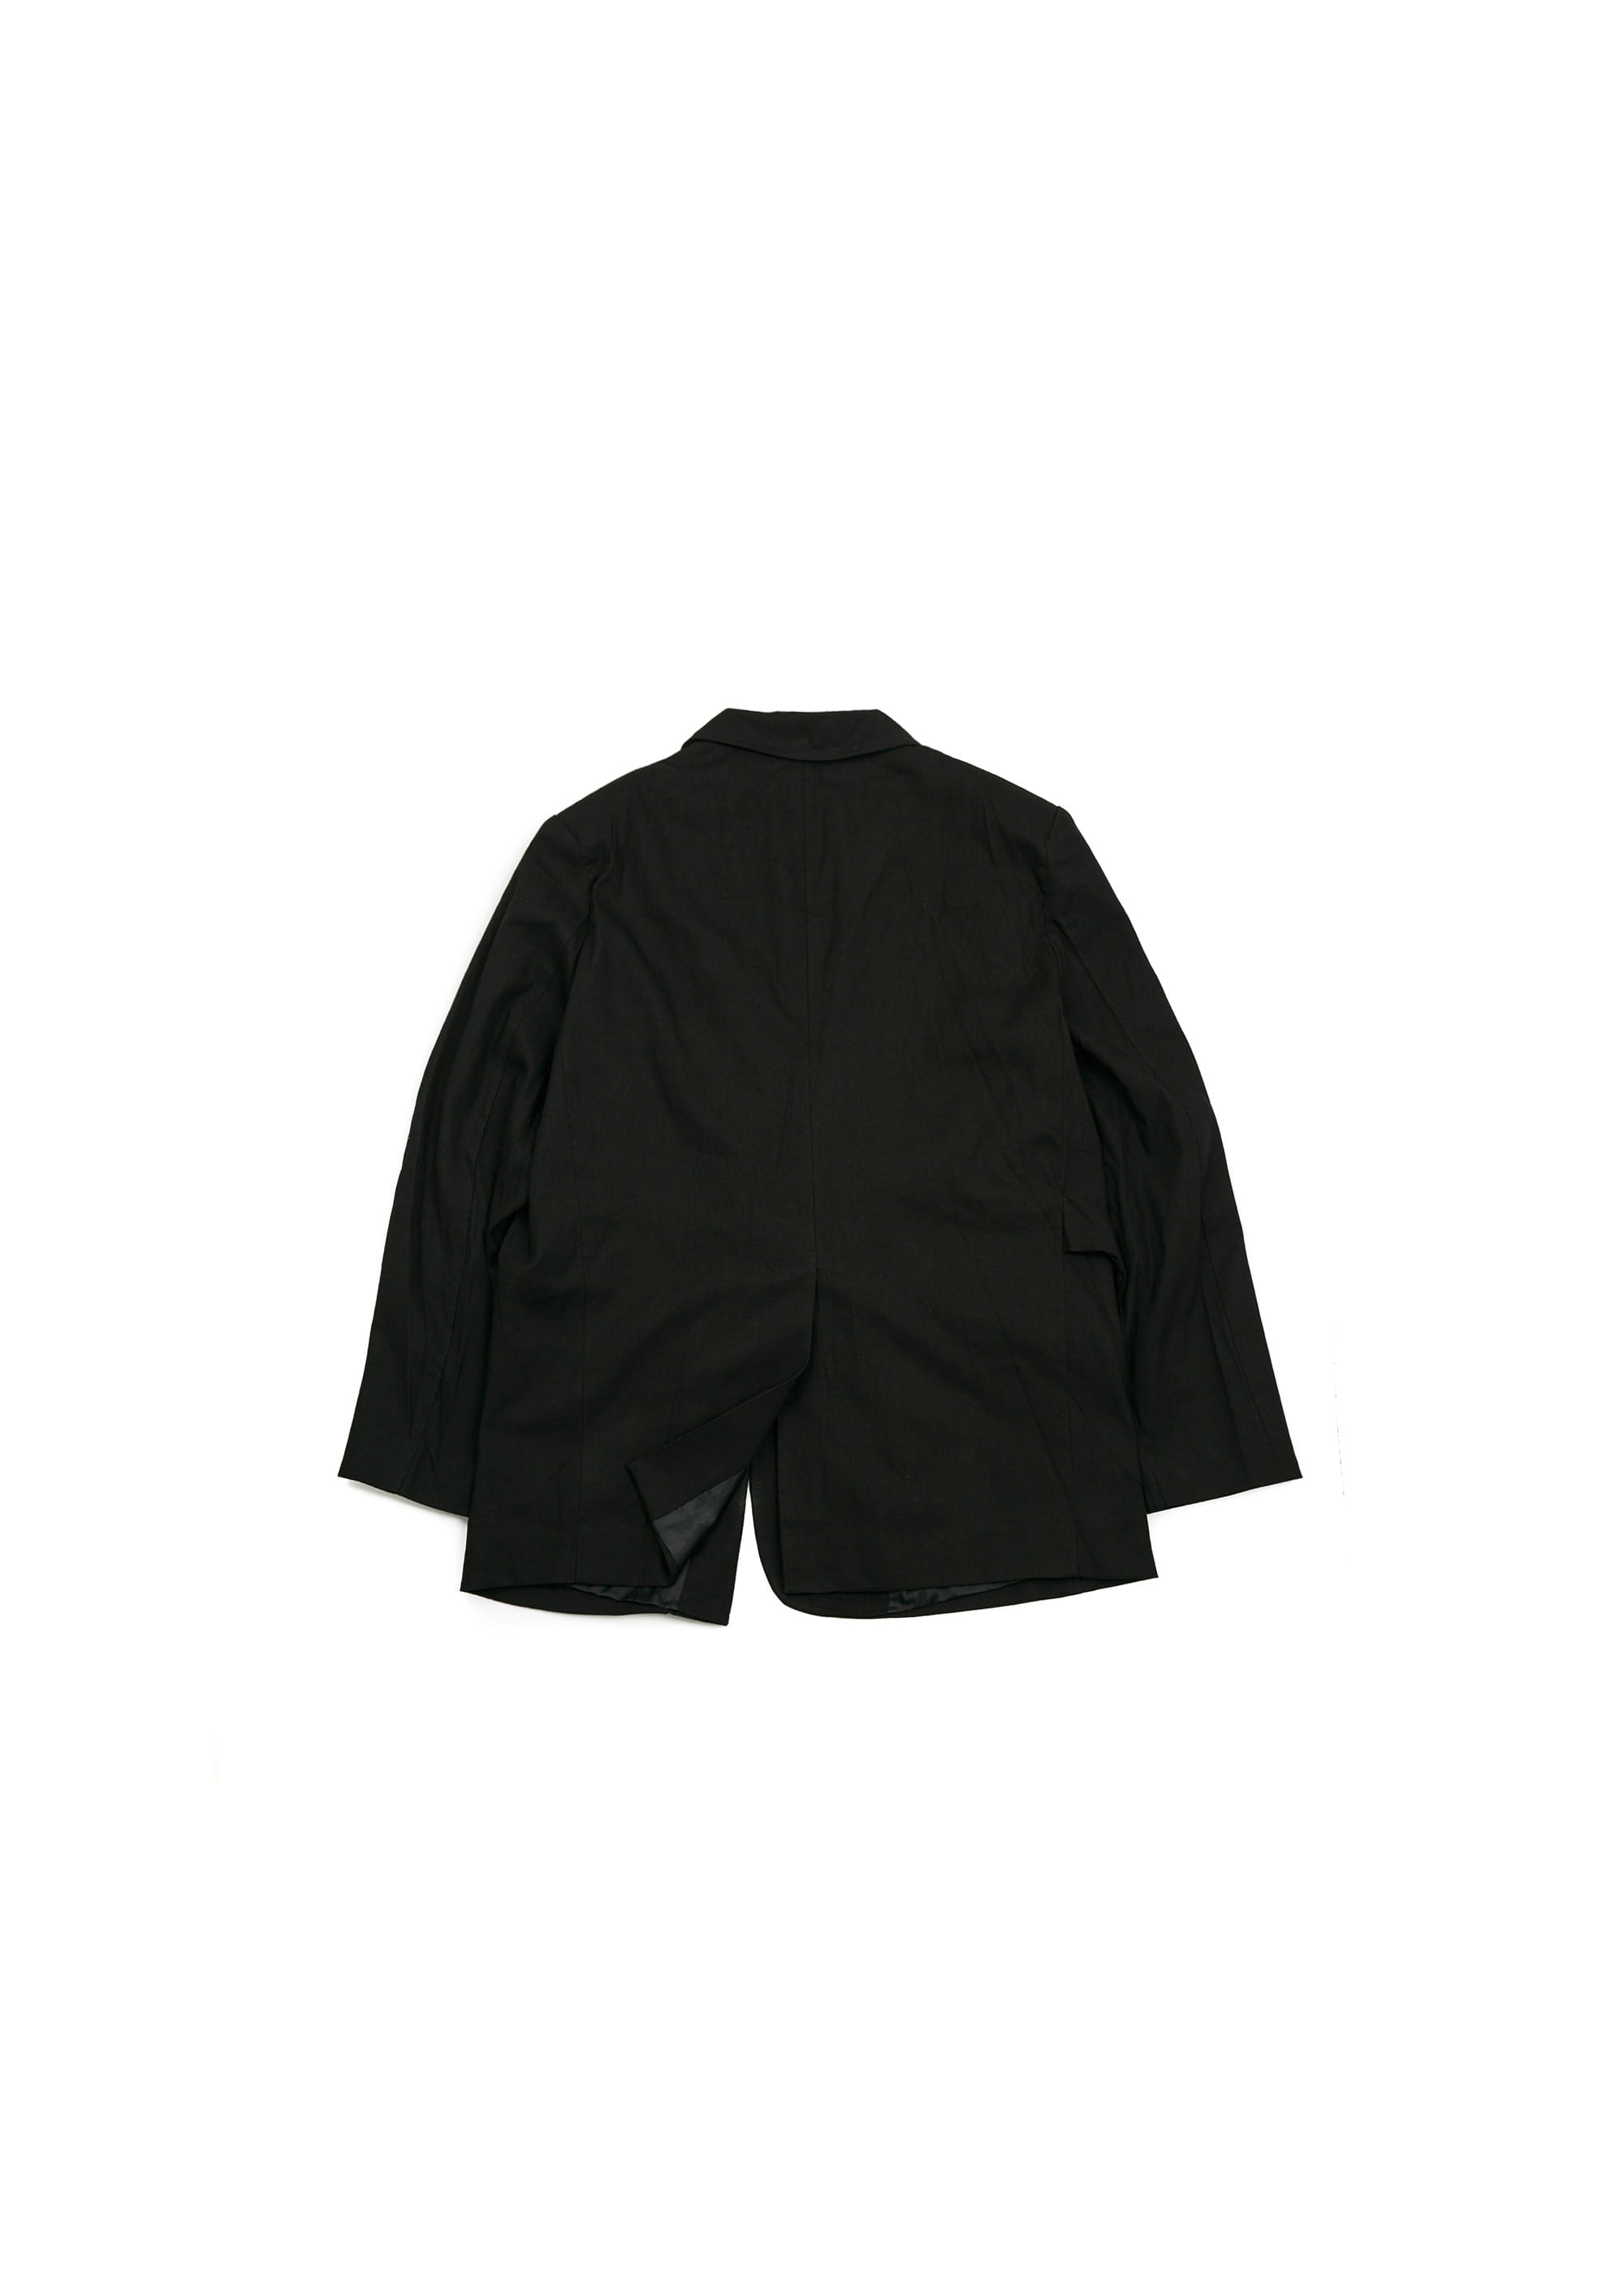 Robe Blazer Jacket - Black